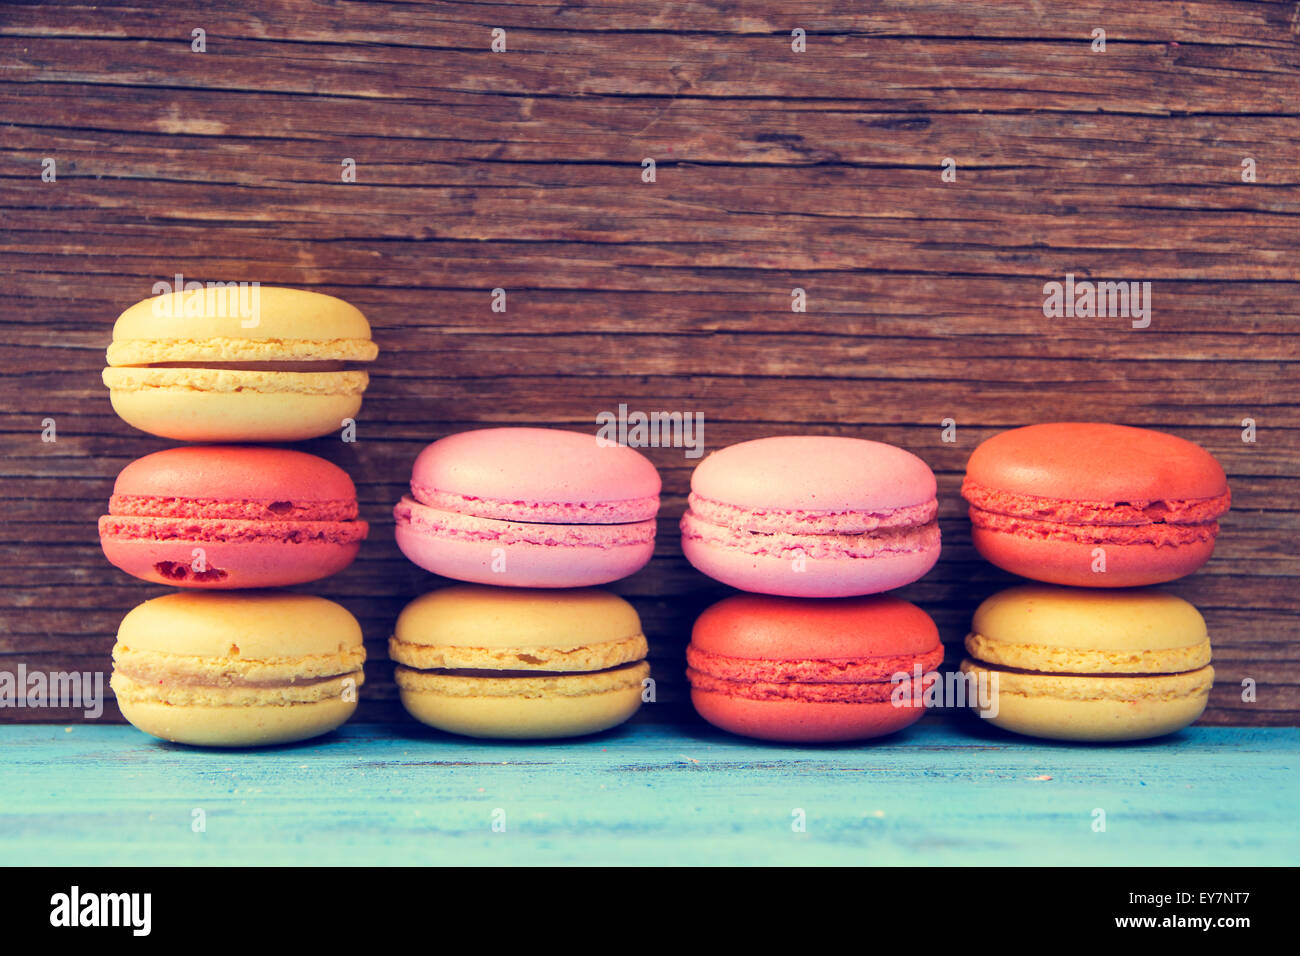 some appetizing macarons with different colors and flavors on a blue rustic wooden surface, cross processed - Stock Image